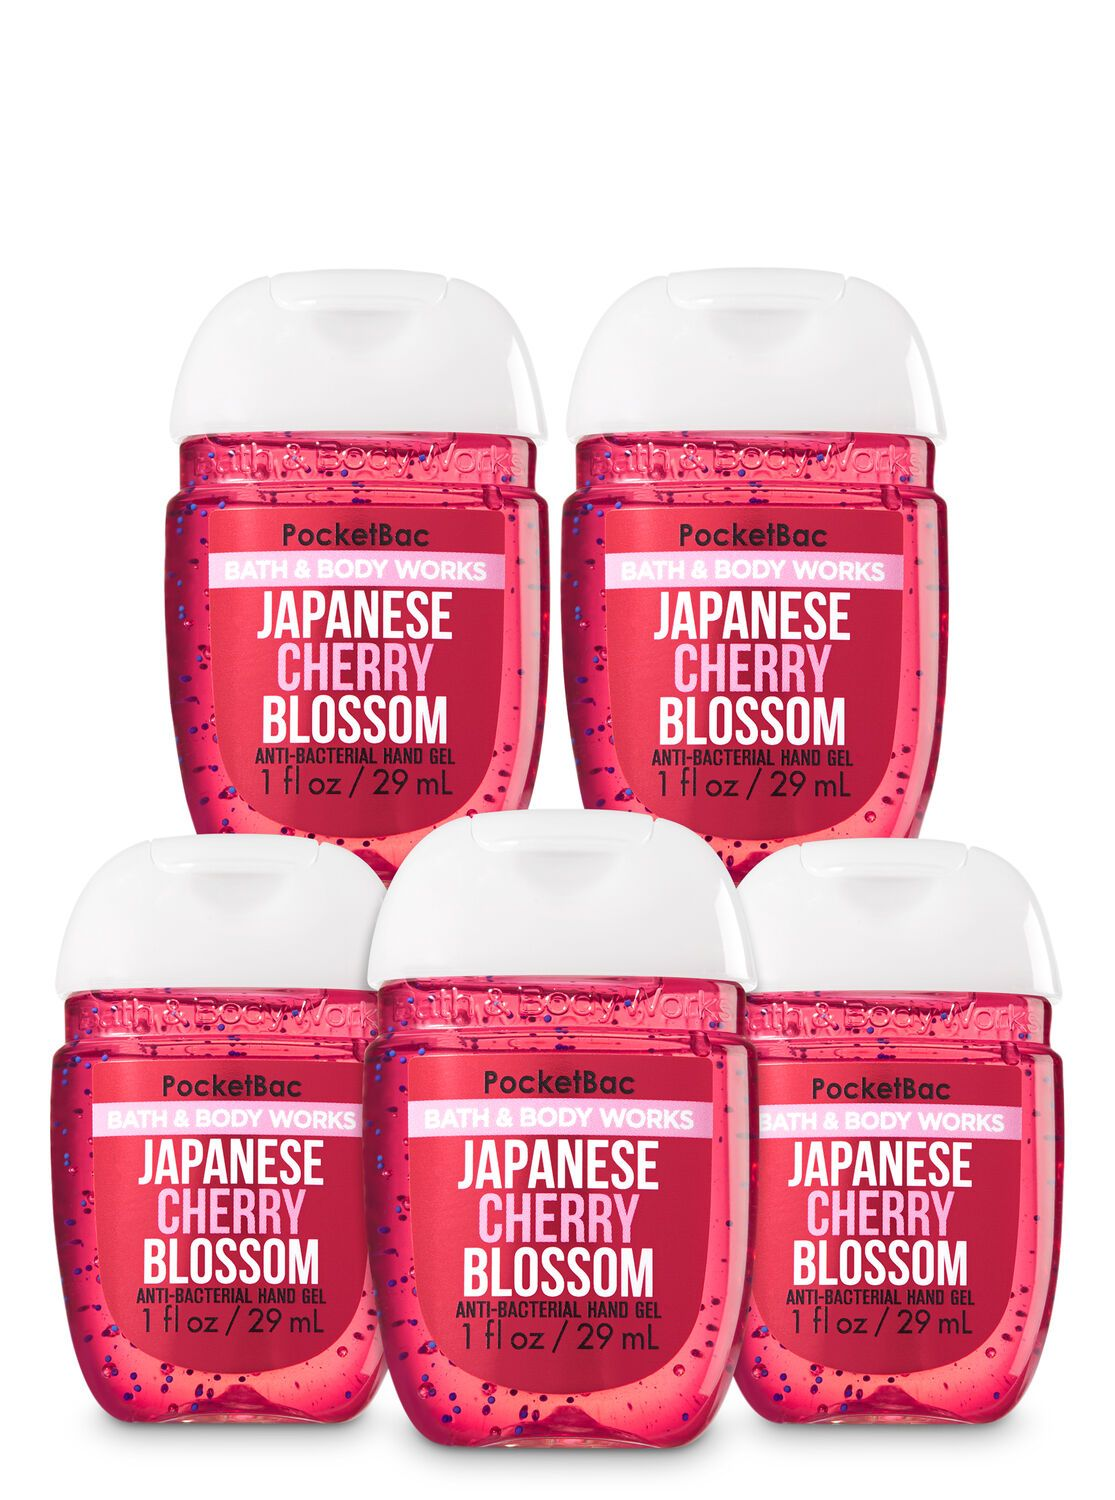 Japanese Cherry Blossom Pocketbac Hand Sanitizer 5 Pack Hand